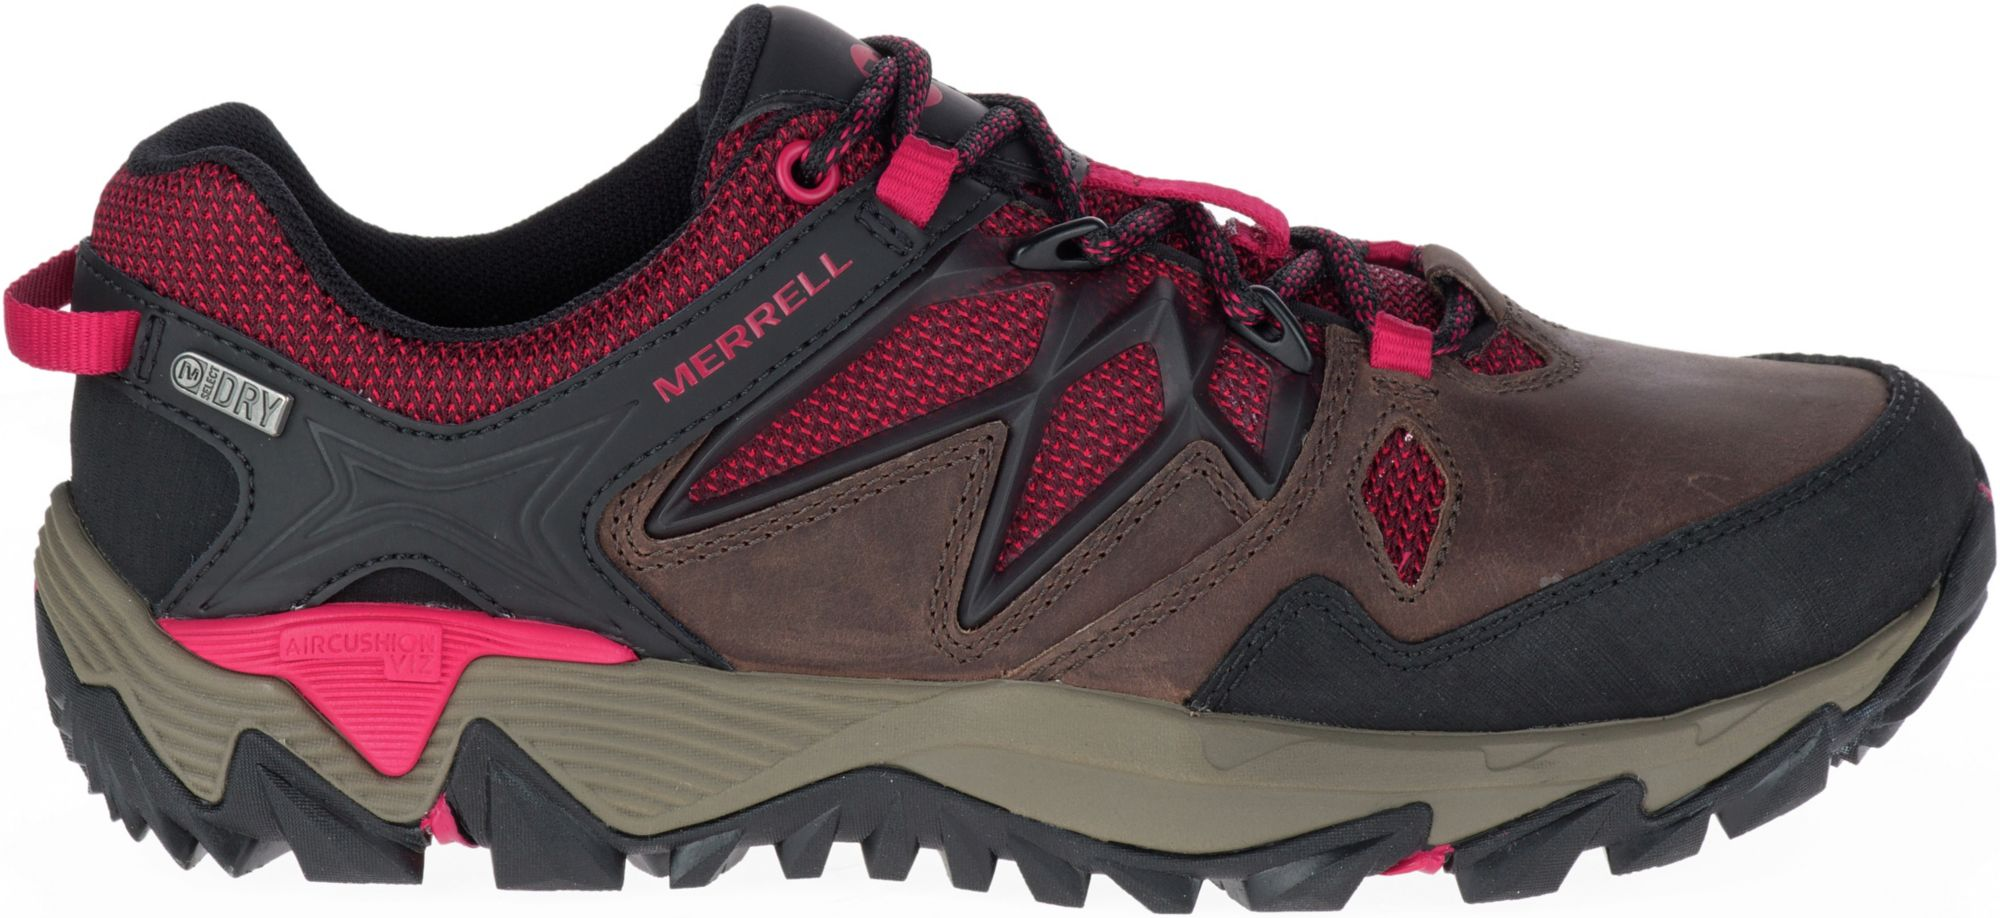 Merrell All Out Blaze 2 Hiking Shoe cpaNO4HZ7